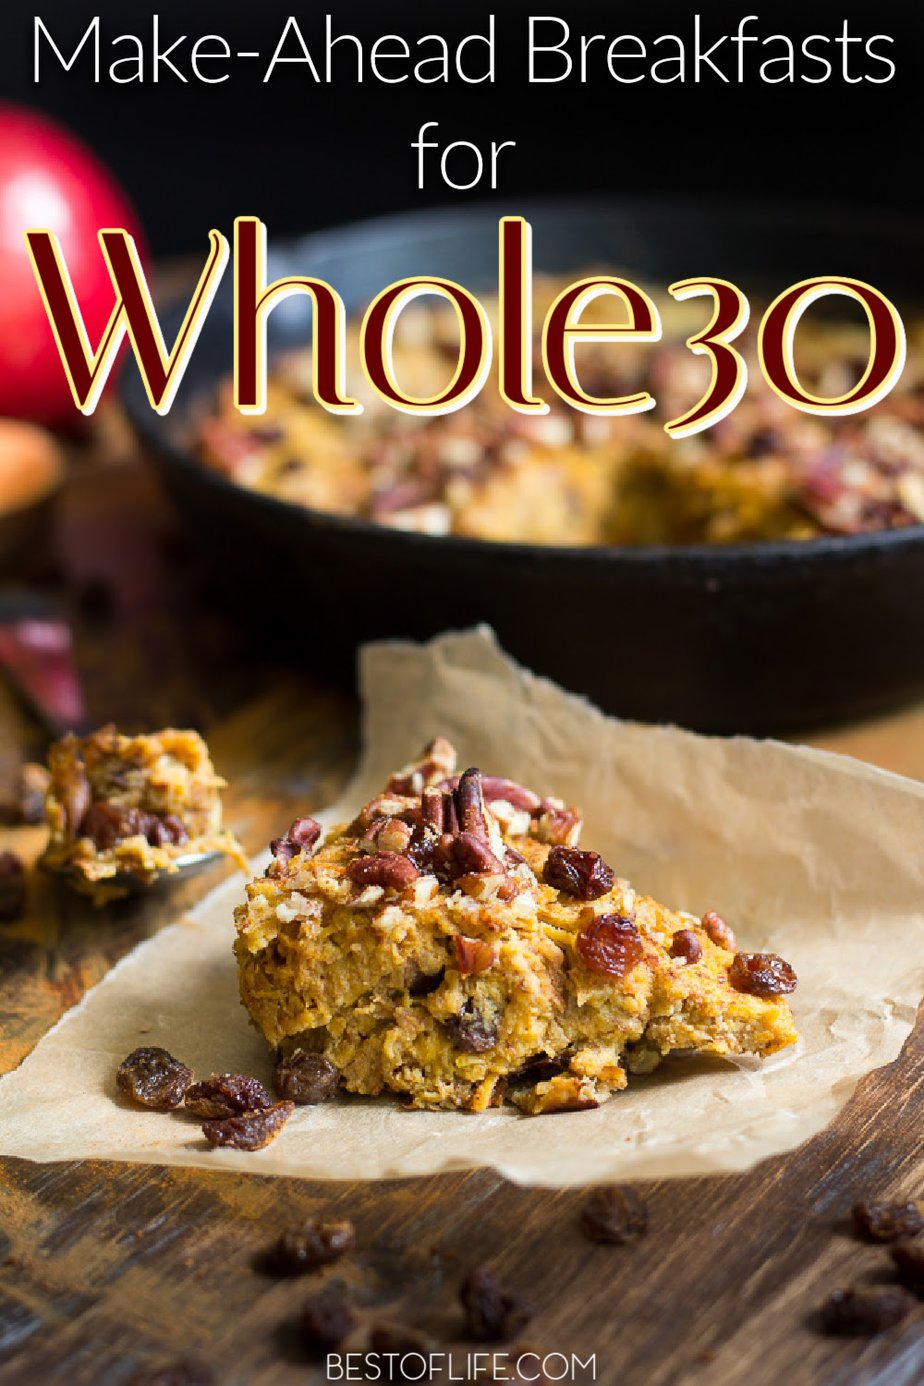 These make ahead Whole30 breakfast recipes are the perfect jumping off point to lose weight and you won't even have to revamp all of your go-to recipes either. Whole30 Breakfast Casserole Recipes   Breakfast No Eggs Whole30   On the Go Breakfast Recipes Whole30   Whole30 Breakfast Sausage   Whole30 Breakfast Hash   Make Ahead Breakfast Recipes   Make Ahead Weight Loss Recipes #whole30 #breakfast via @thebestoflife